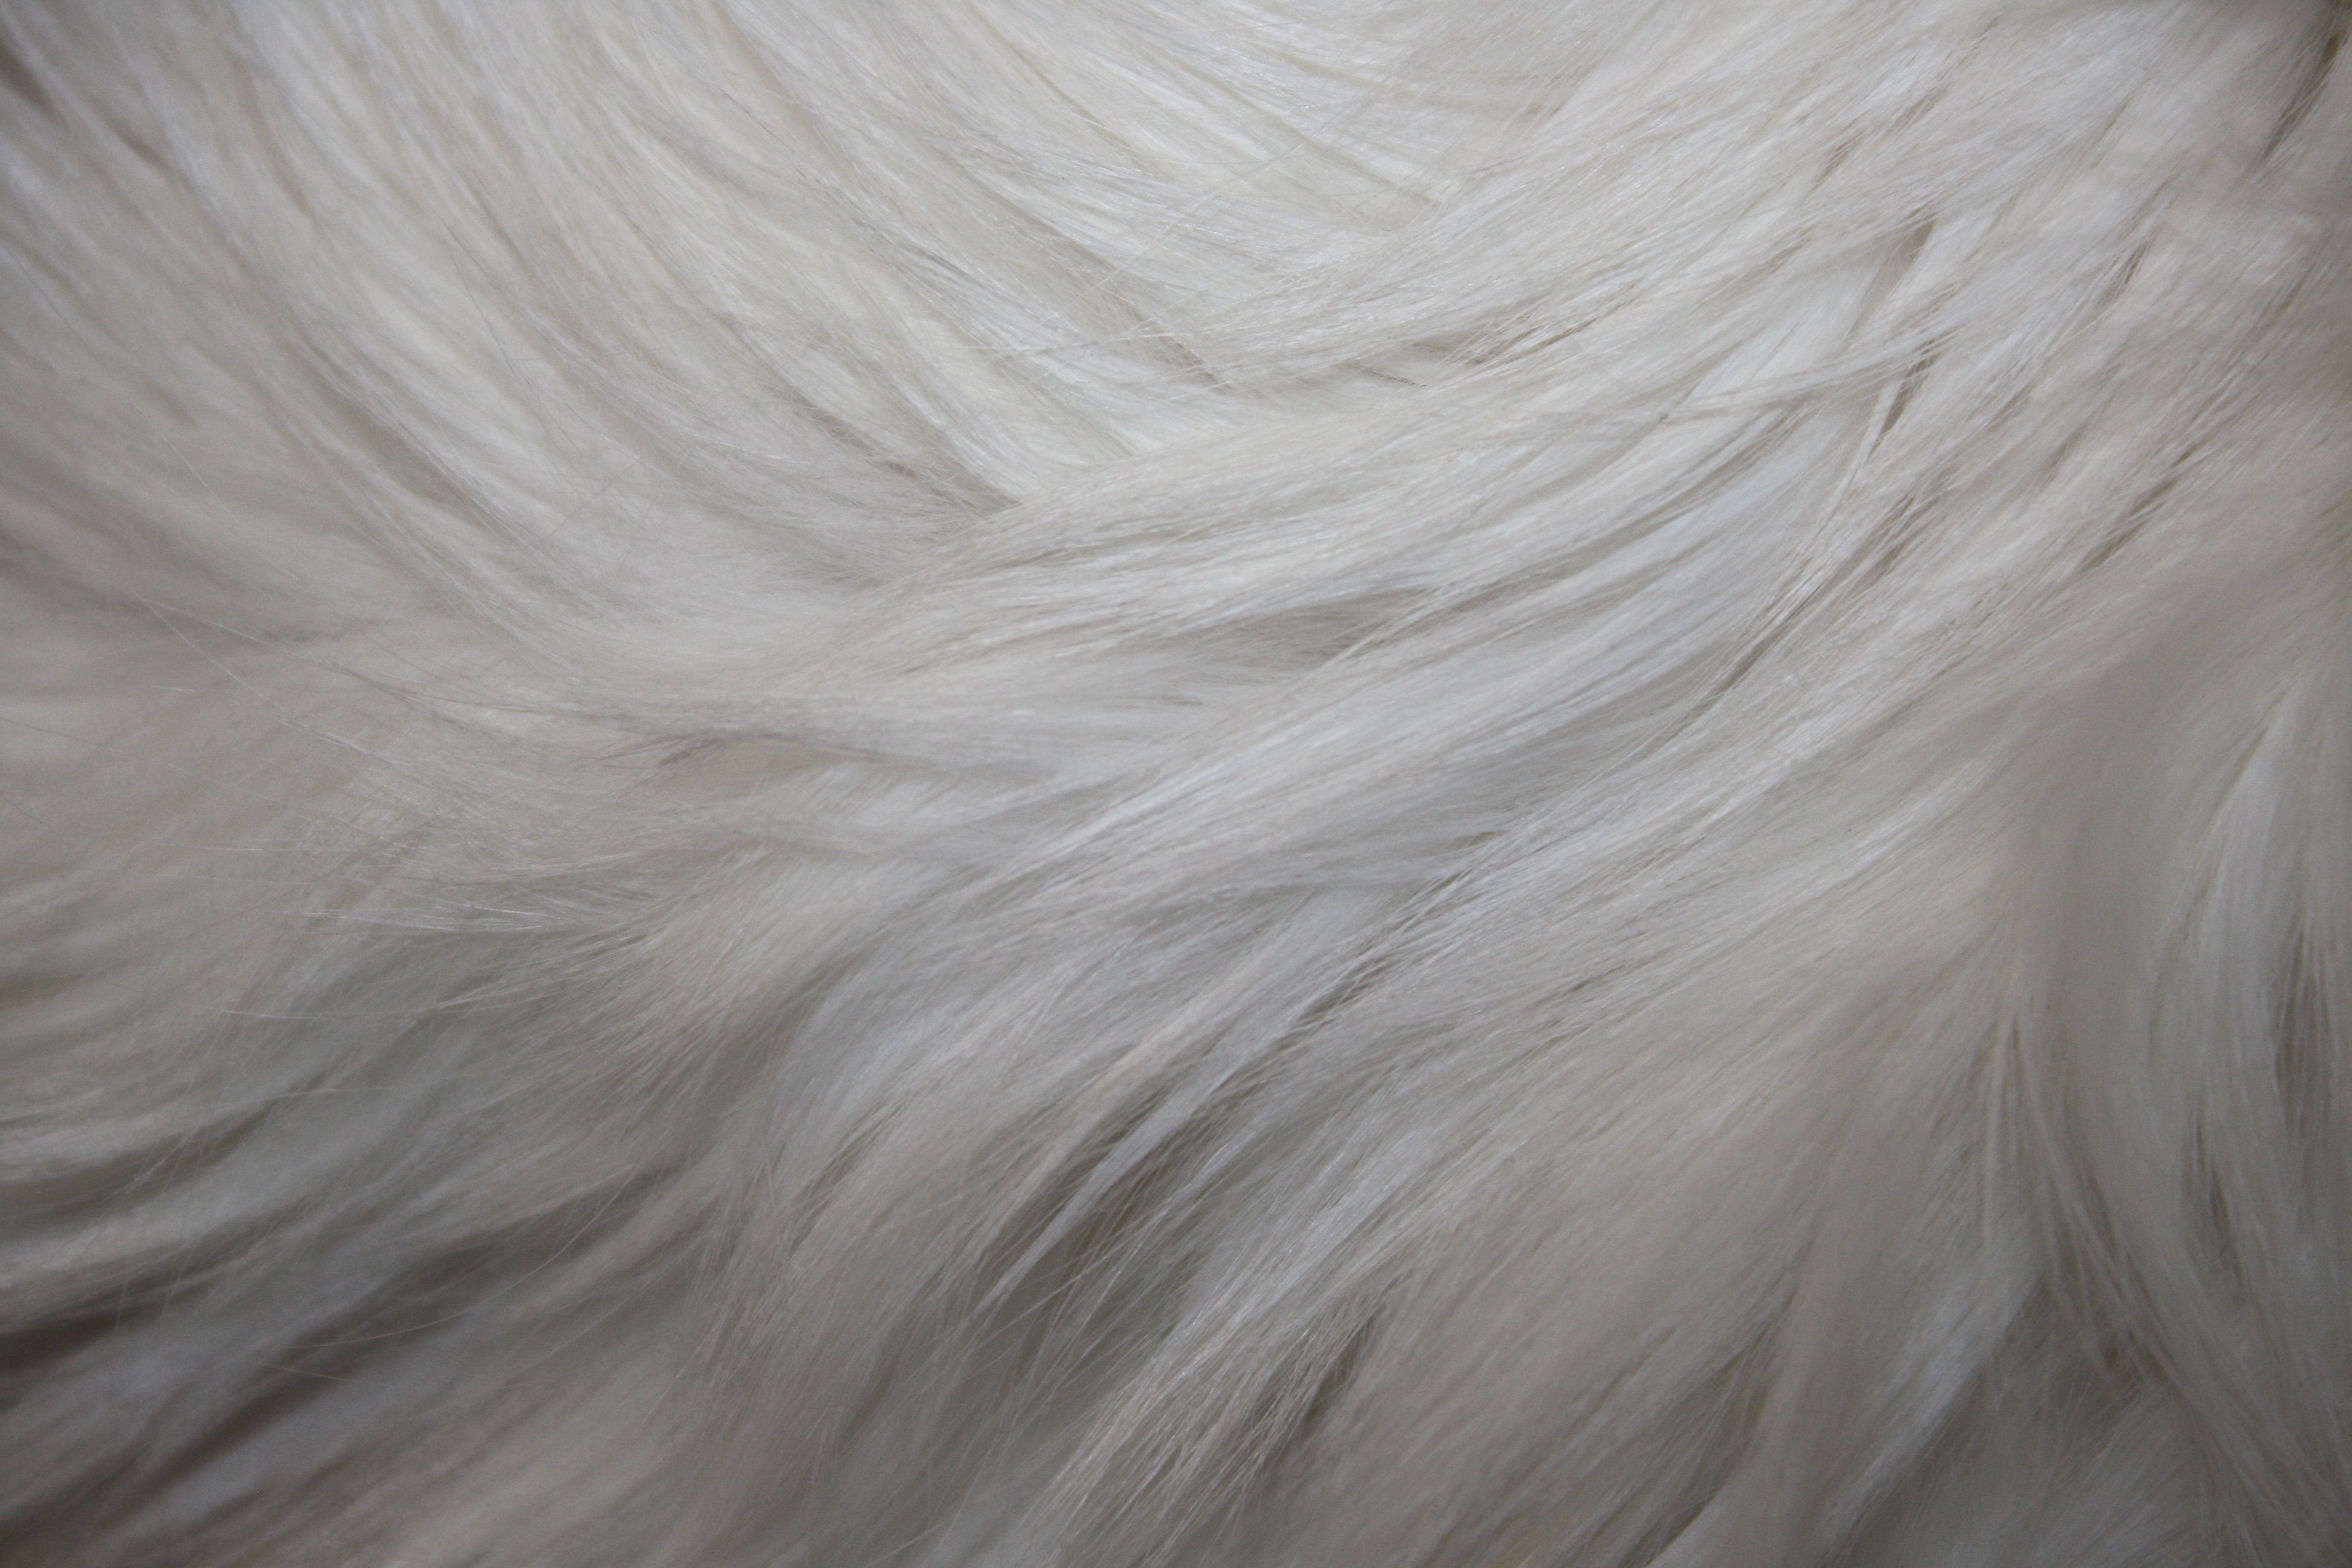 White Fur Texture Picture Free